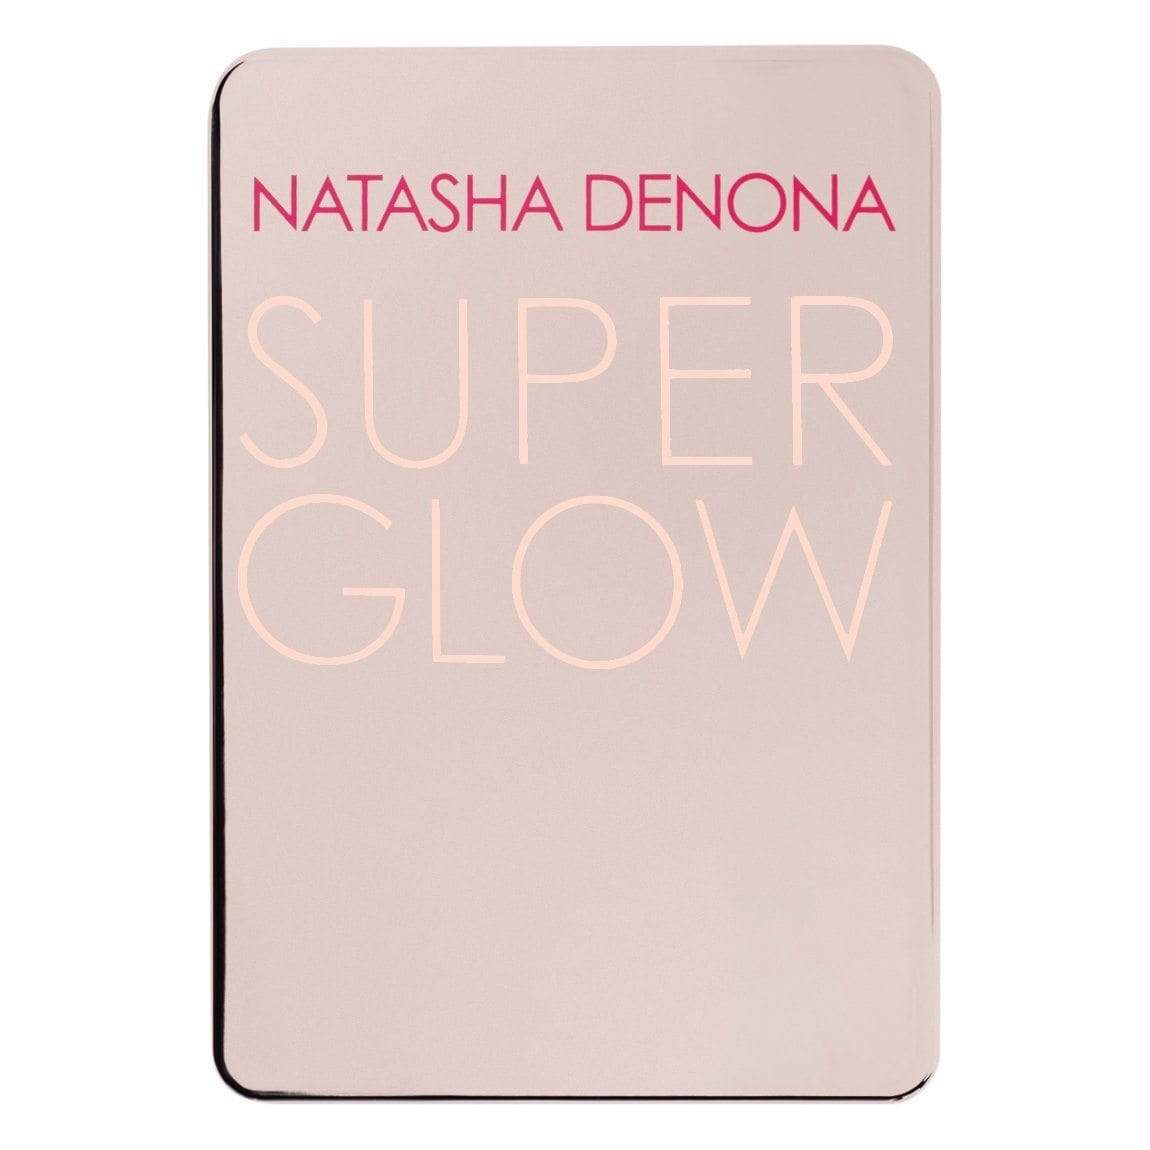 NATASHA DENONA Super Glow - 01 Fair, 10g, Highlighters, London Loves Beauty